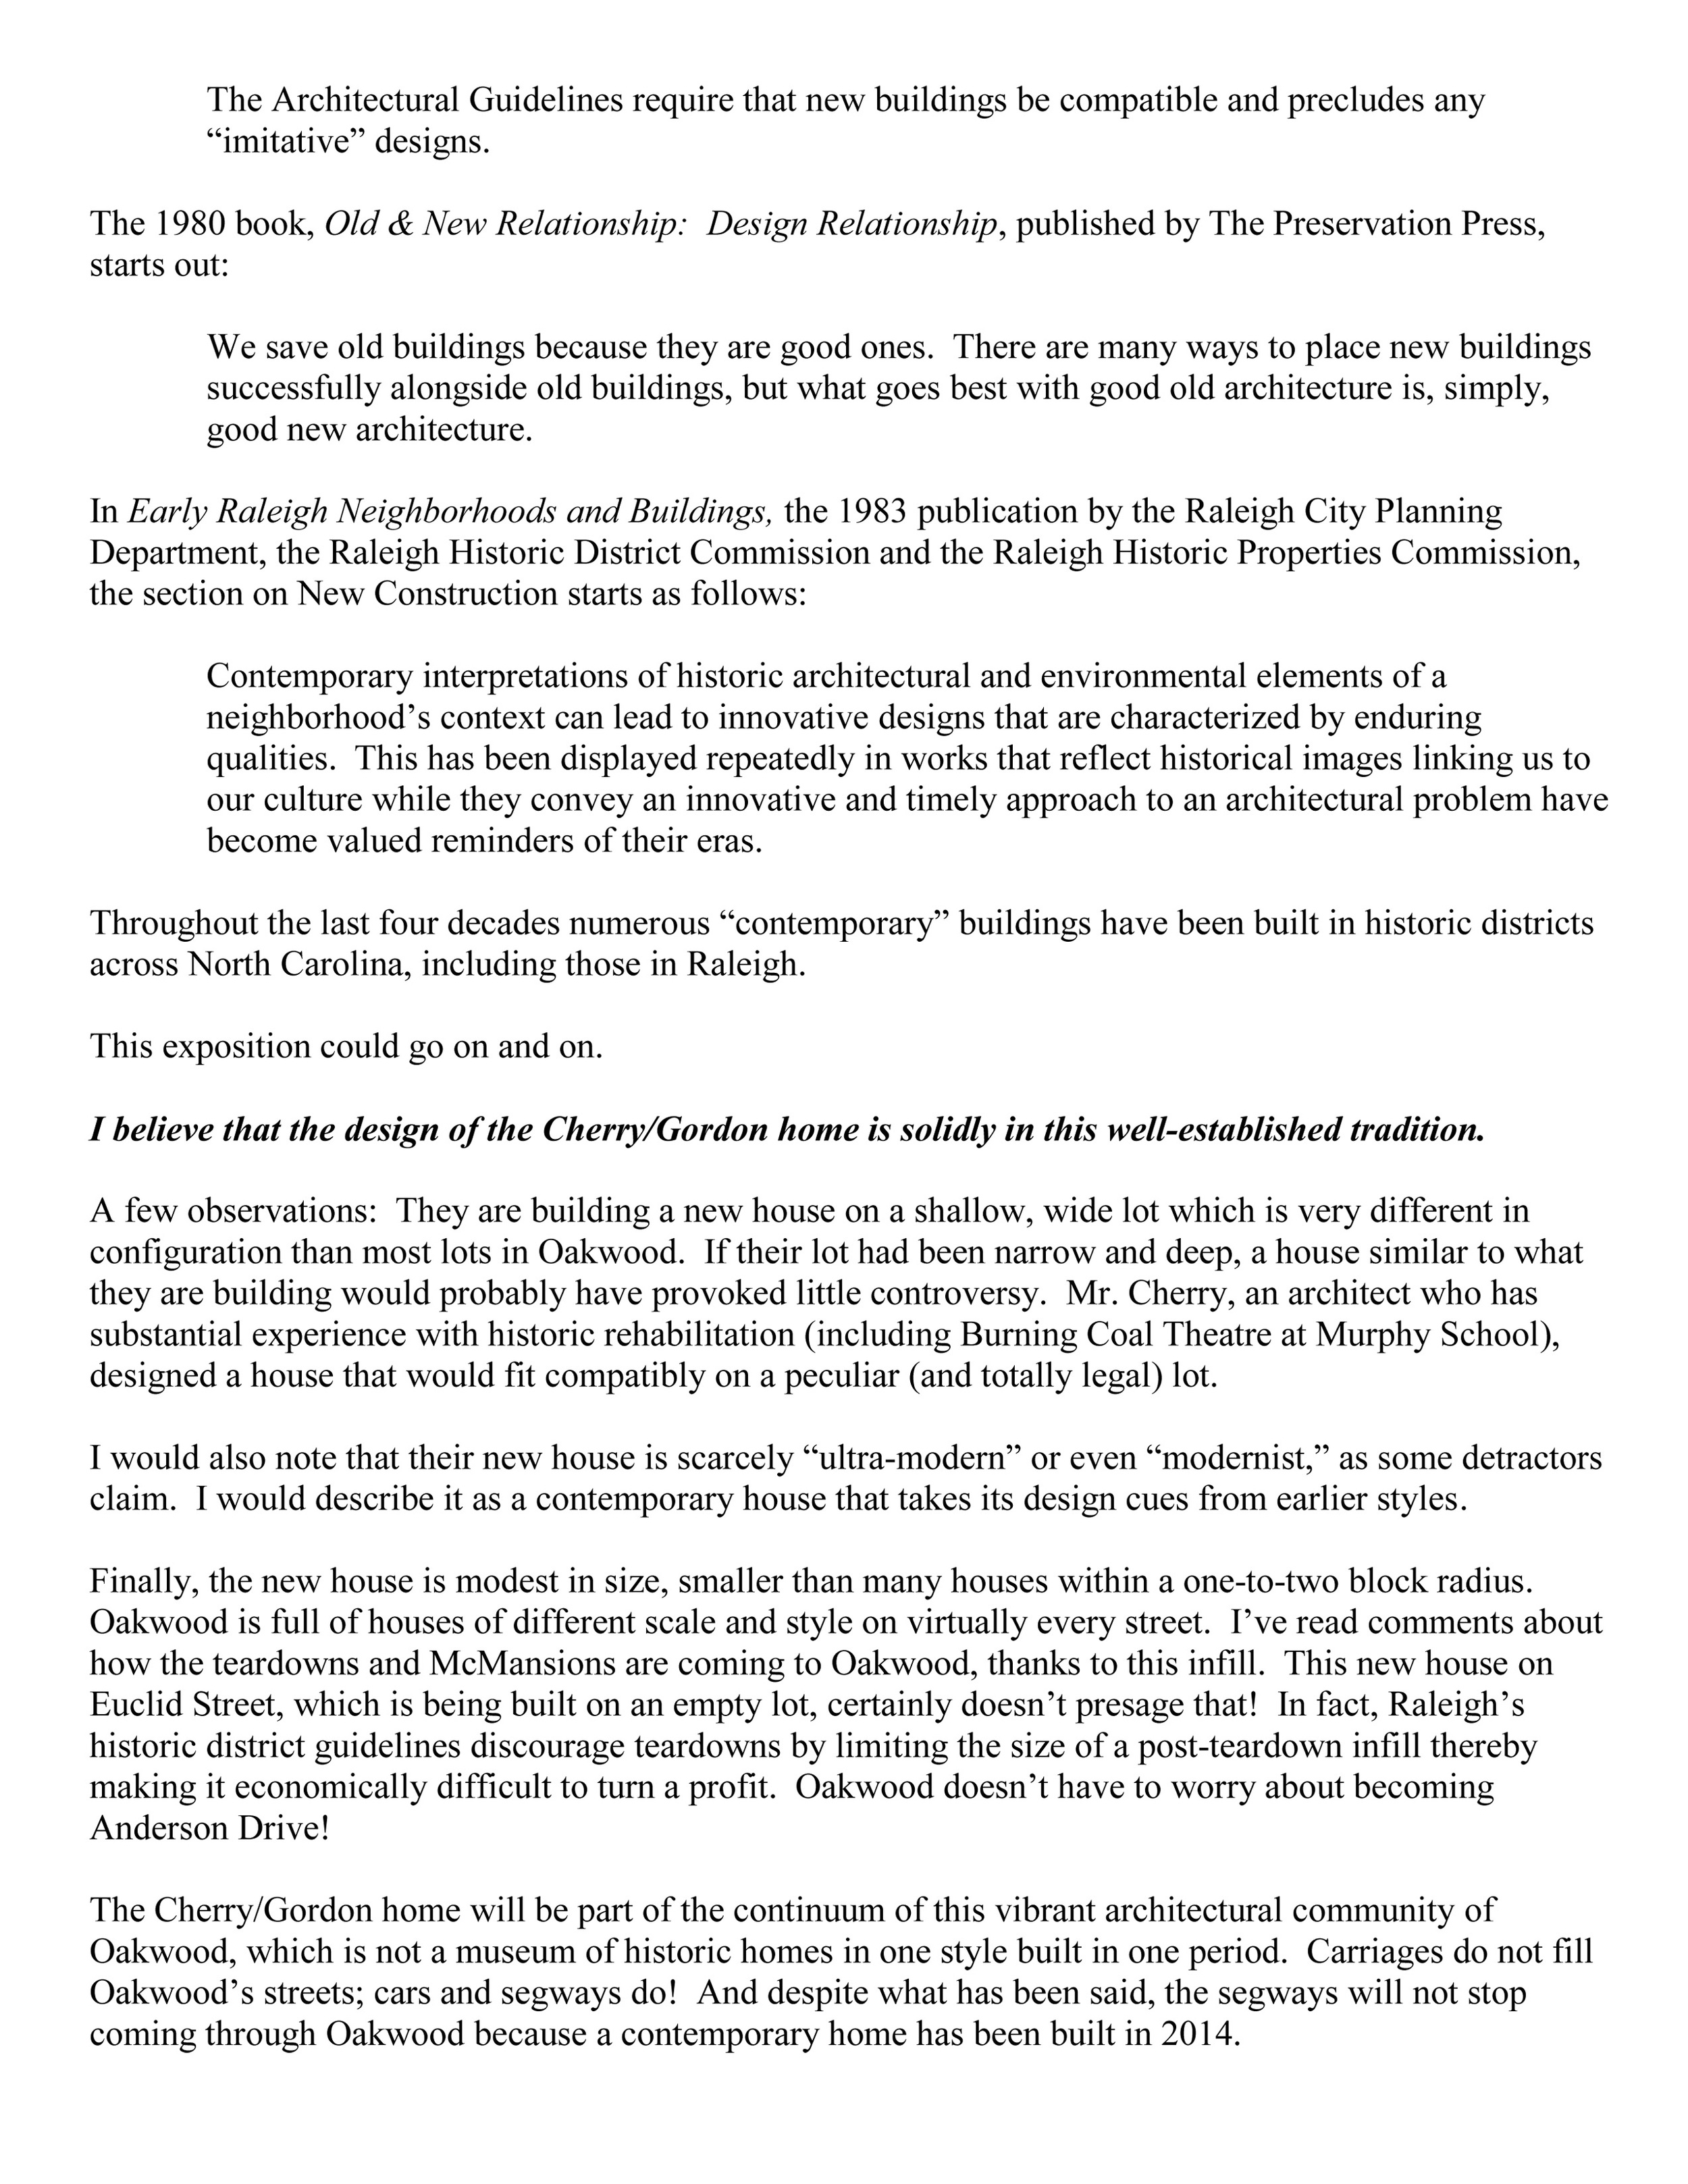 _03_Myrick Howard Oakwood Letter PDF-1.jpg